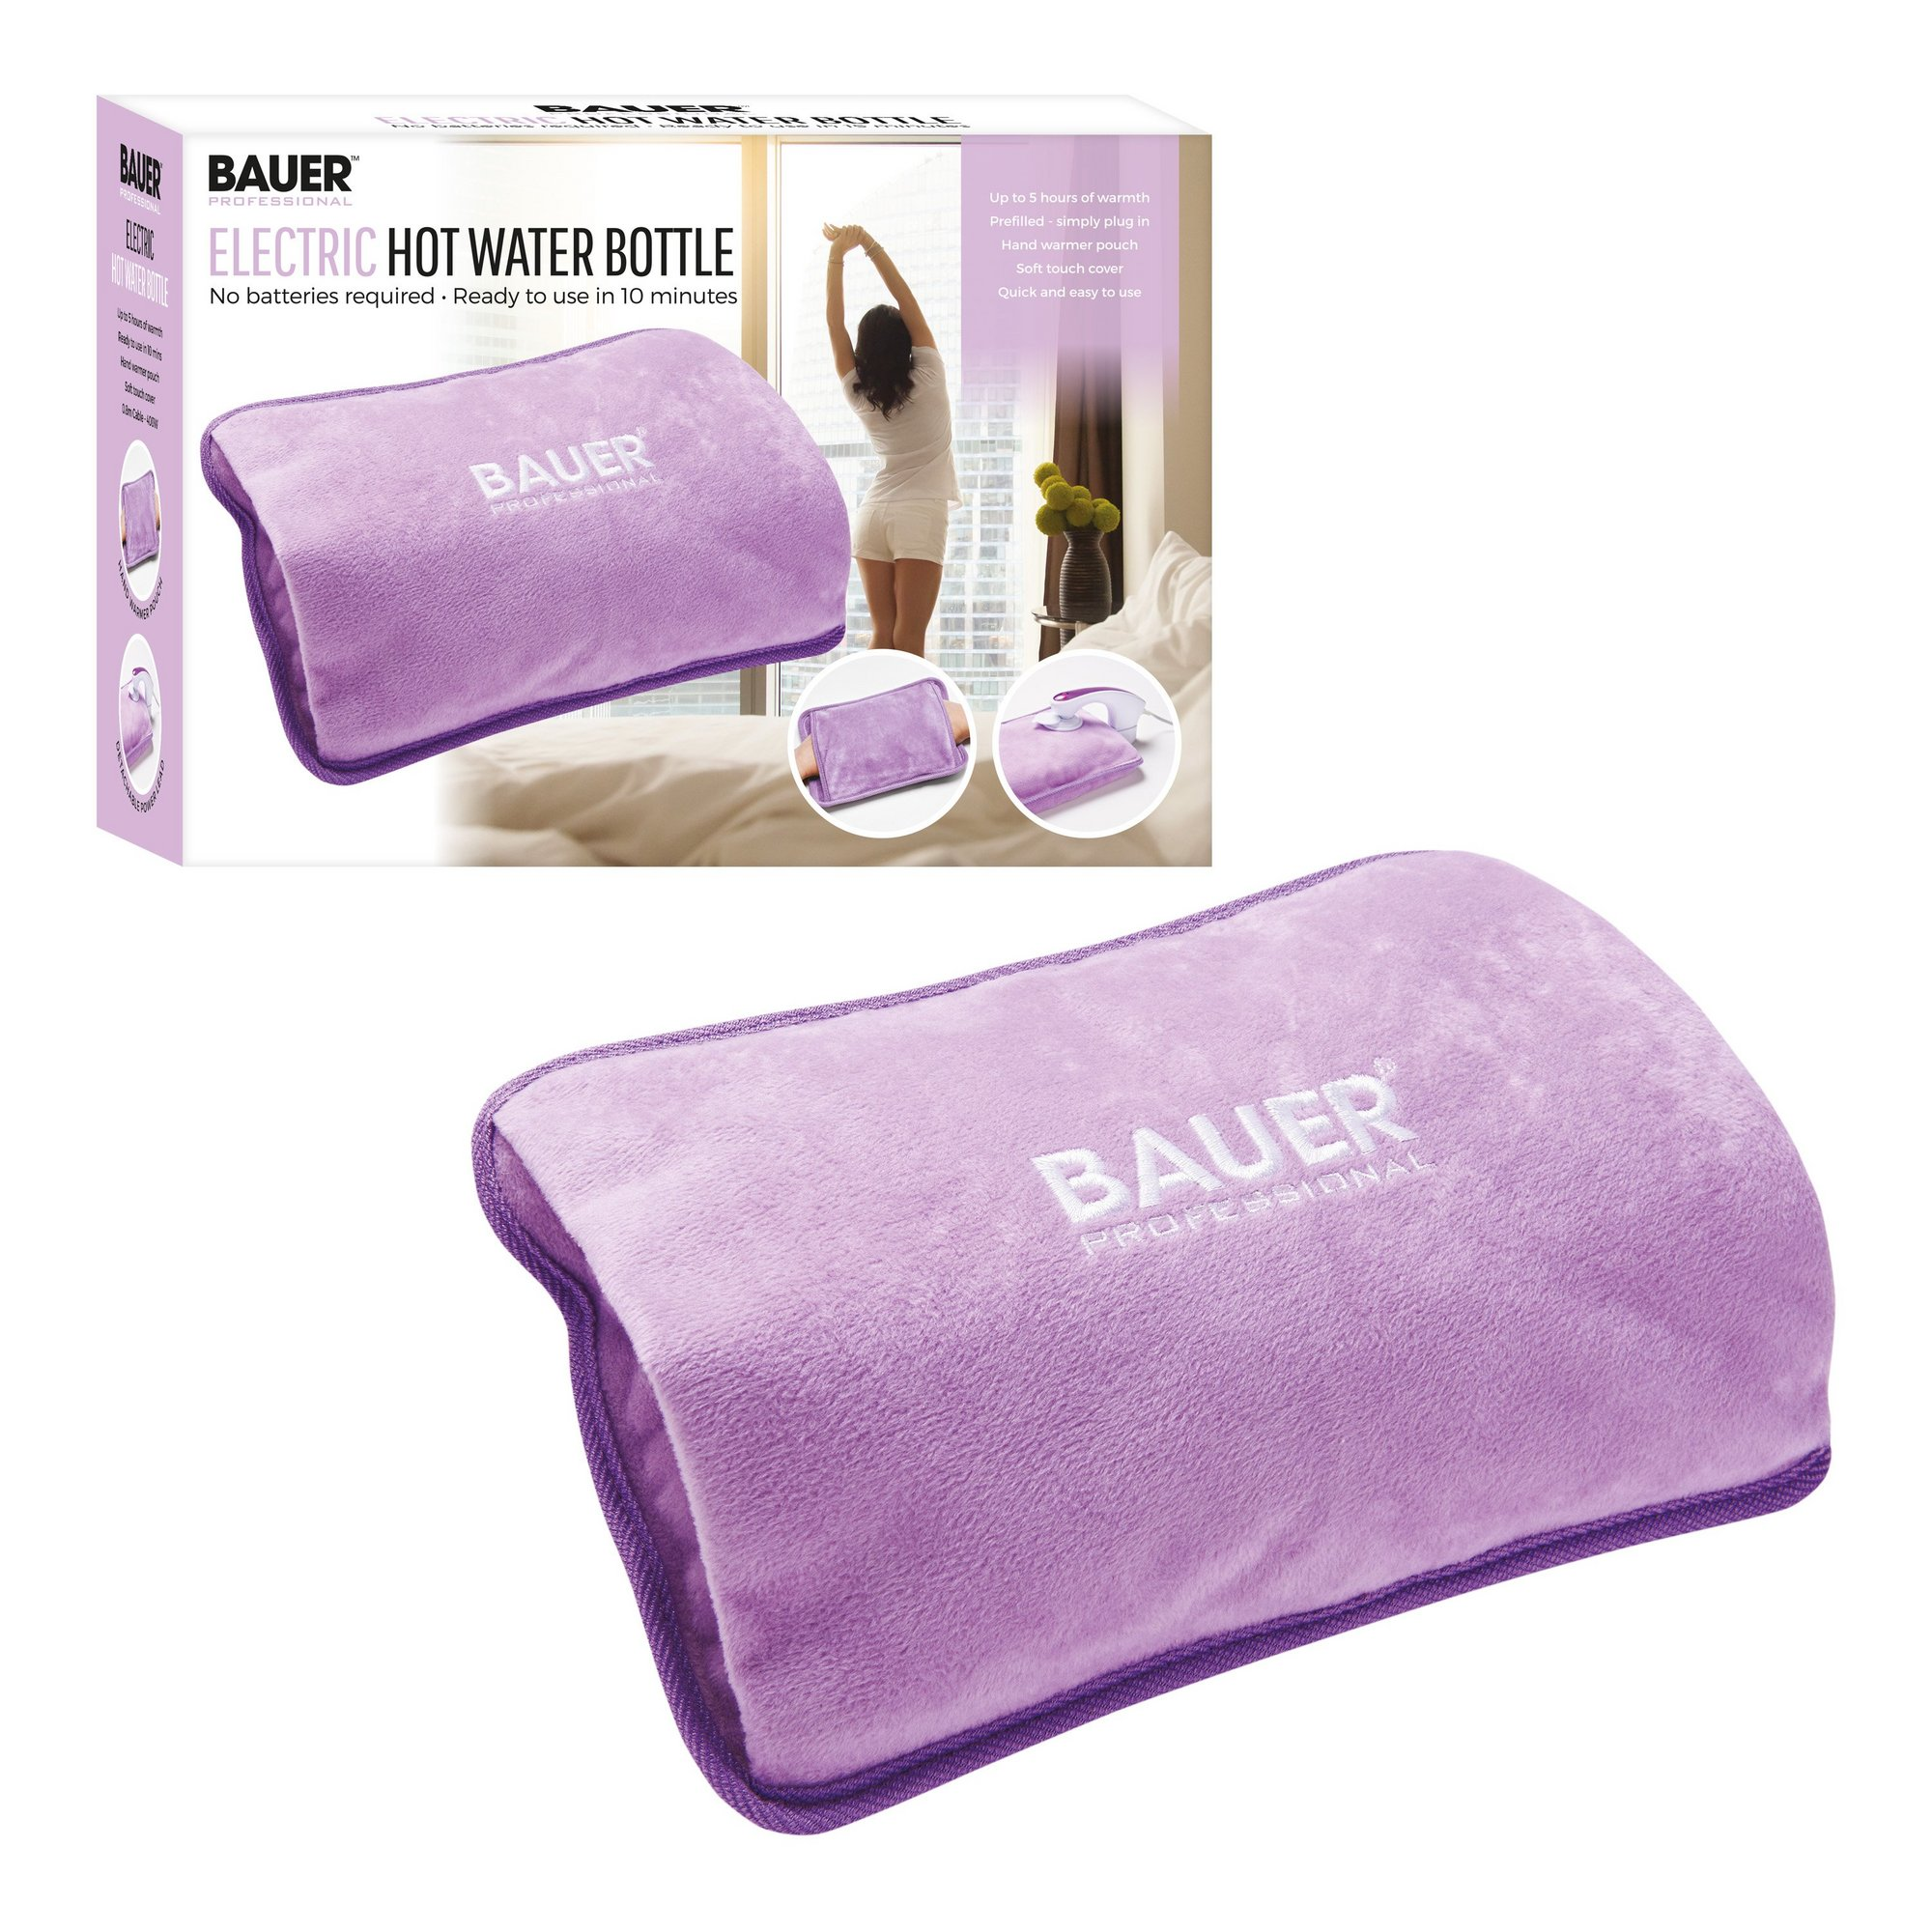 Image of Bauer Rechargeable Electric Hot Water Bottle